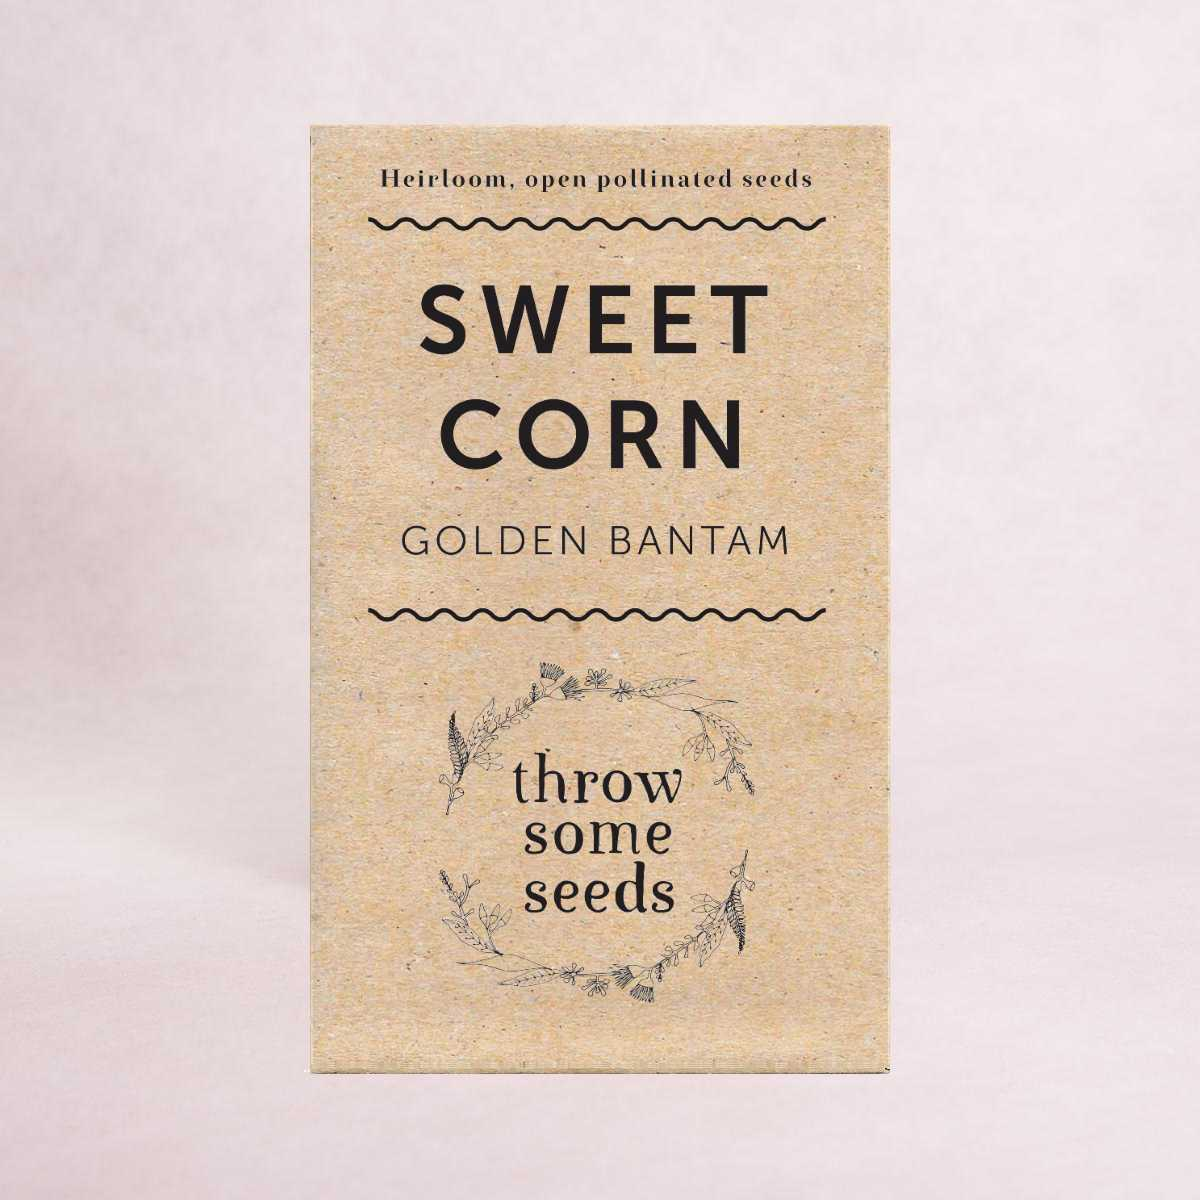 Sweet Corn (Golden Bantam) Seeds - Seeds - Throw Some Seeds - Australian gardening gifts and eco products online!